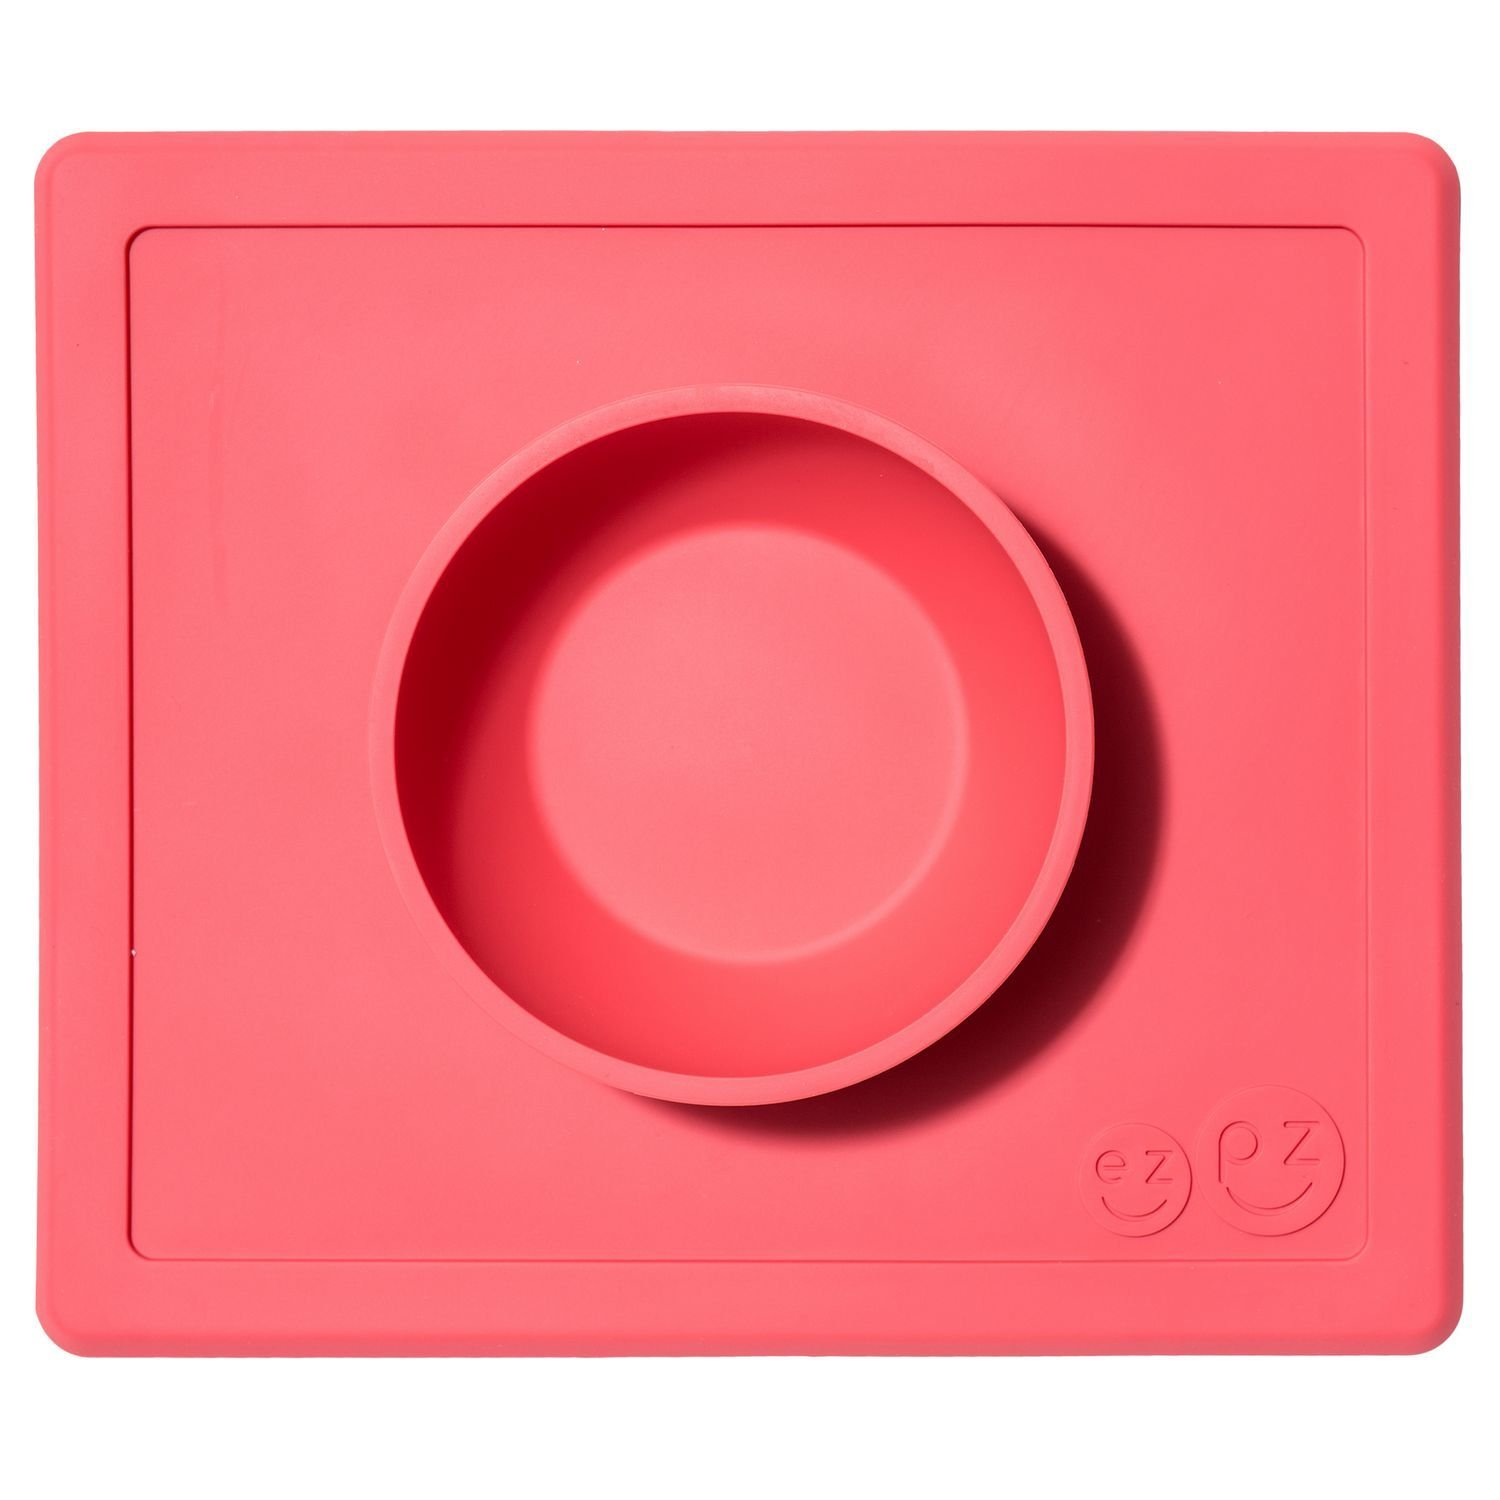 ezpz Happy Bowl - One-piece silicone placemat + bowl (Coral) LMHBC004